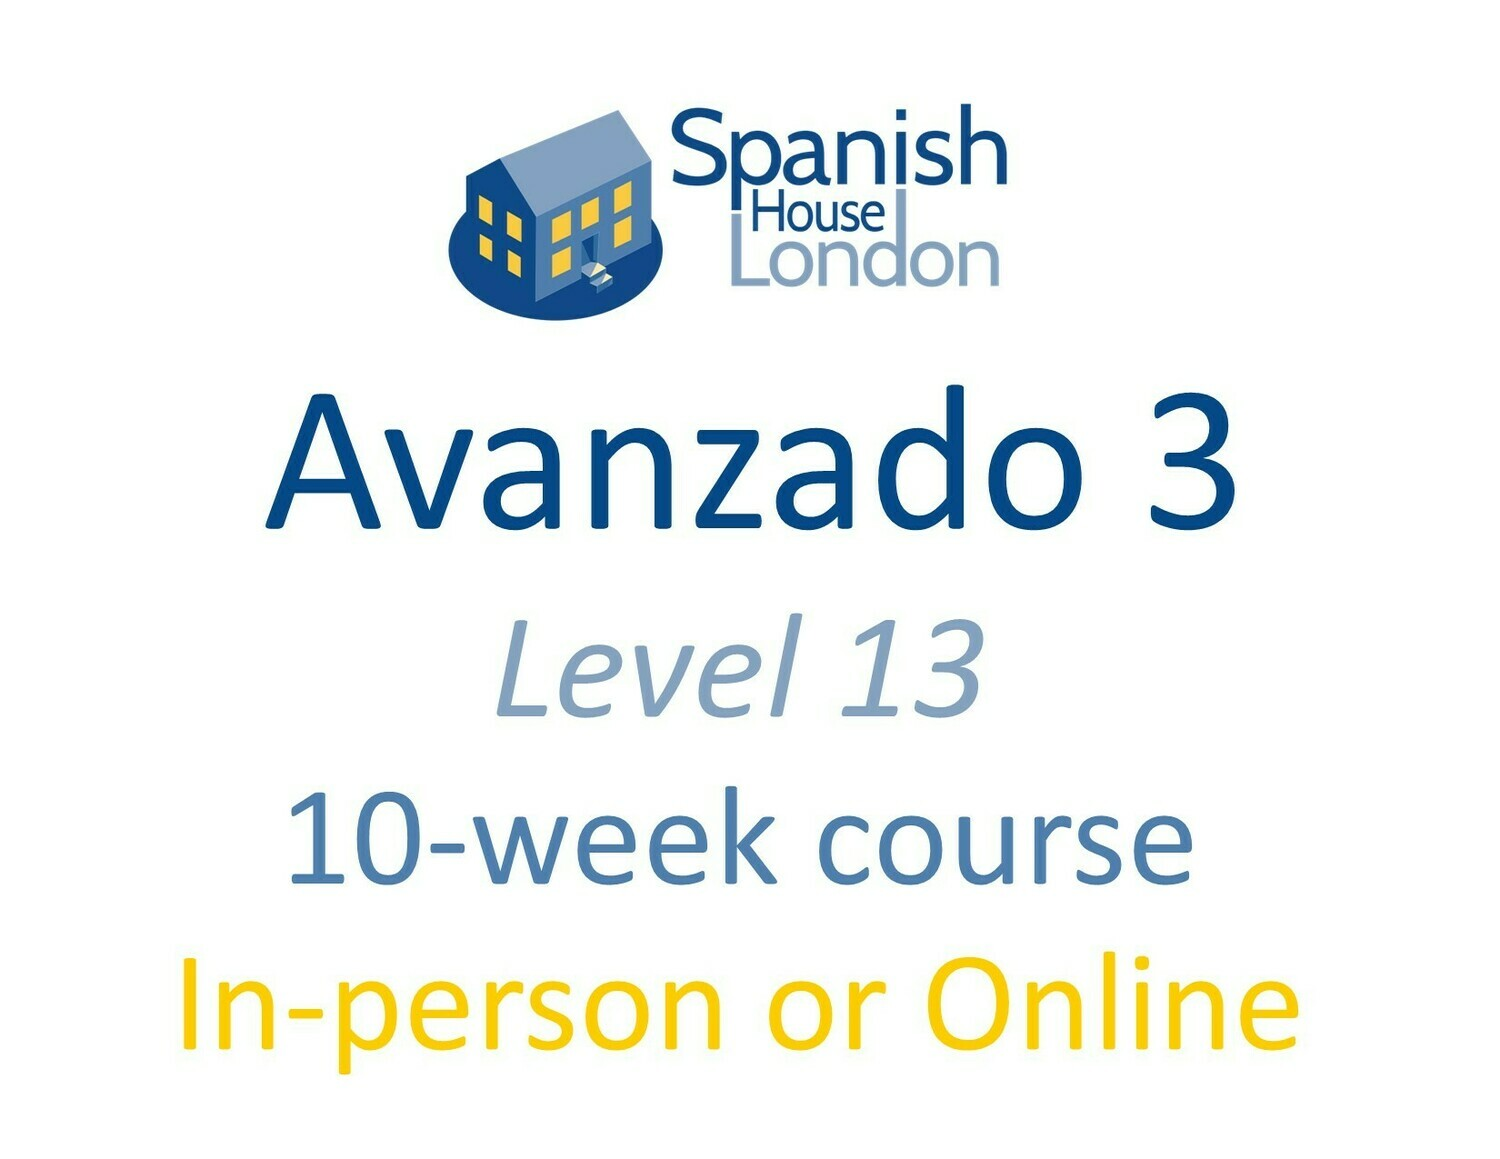 Avanzado 3 Course starting on 20th April at 7.30pm in Clapham North